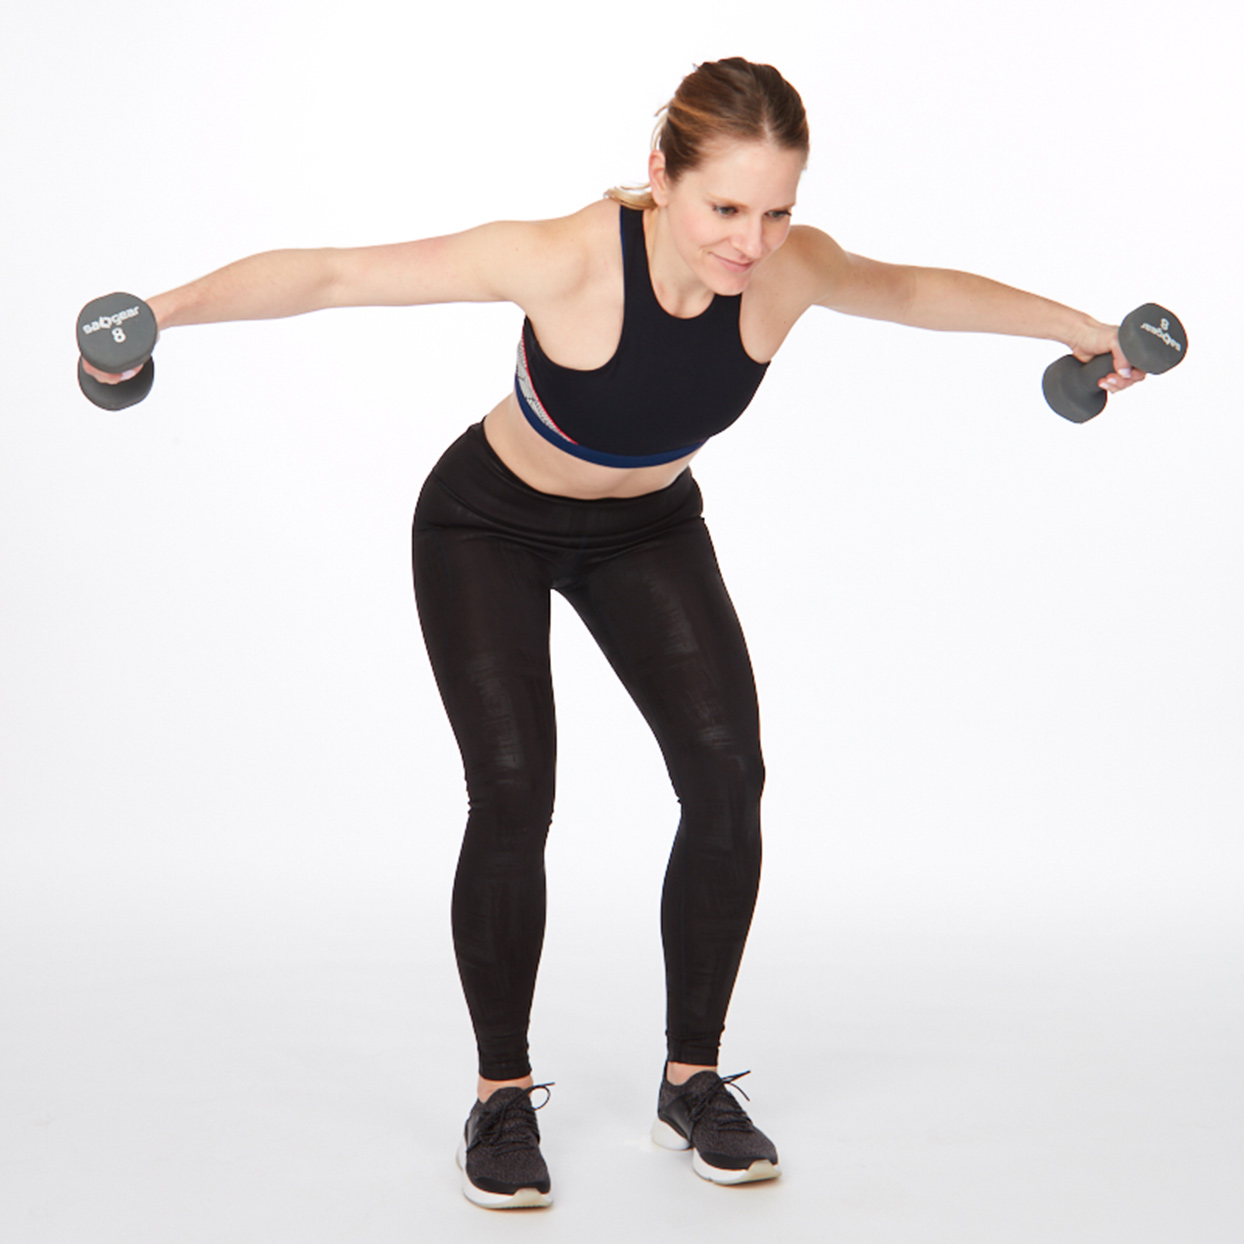 best back fat exercises at home